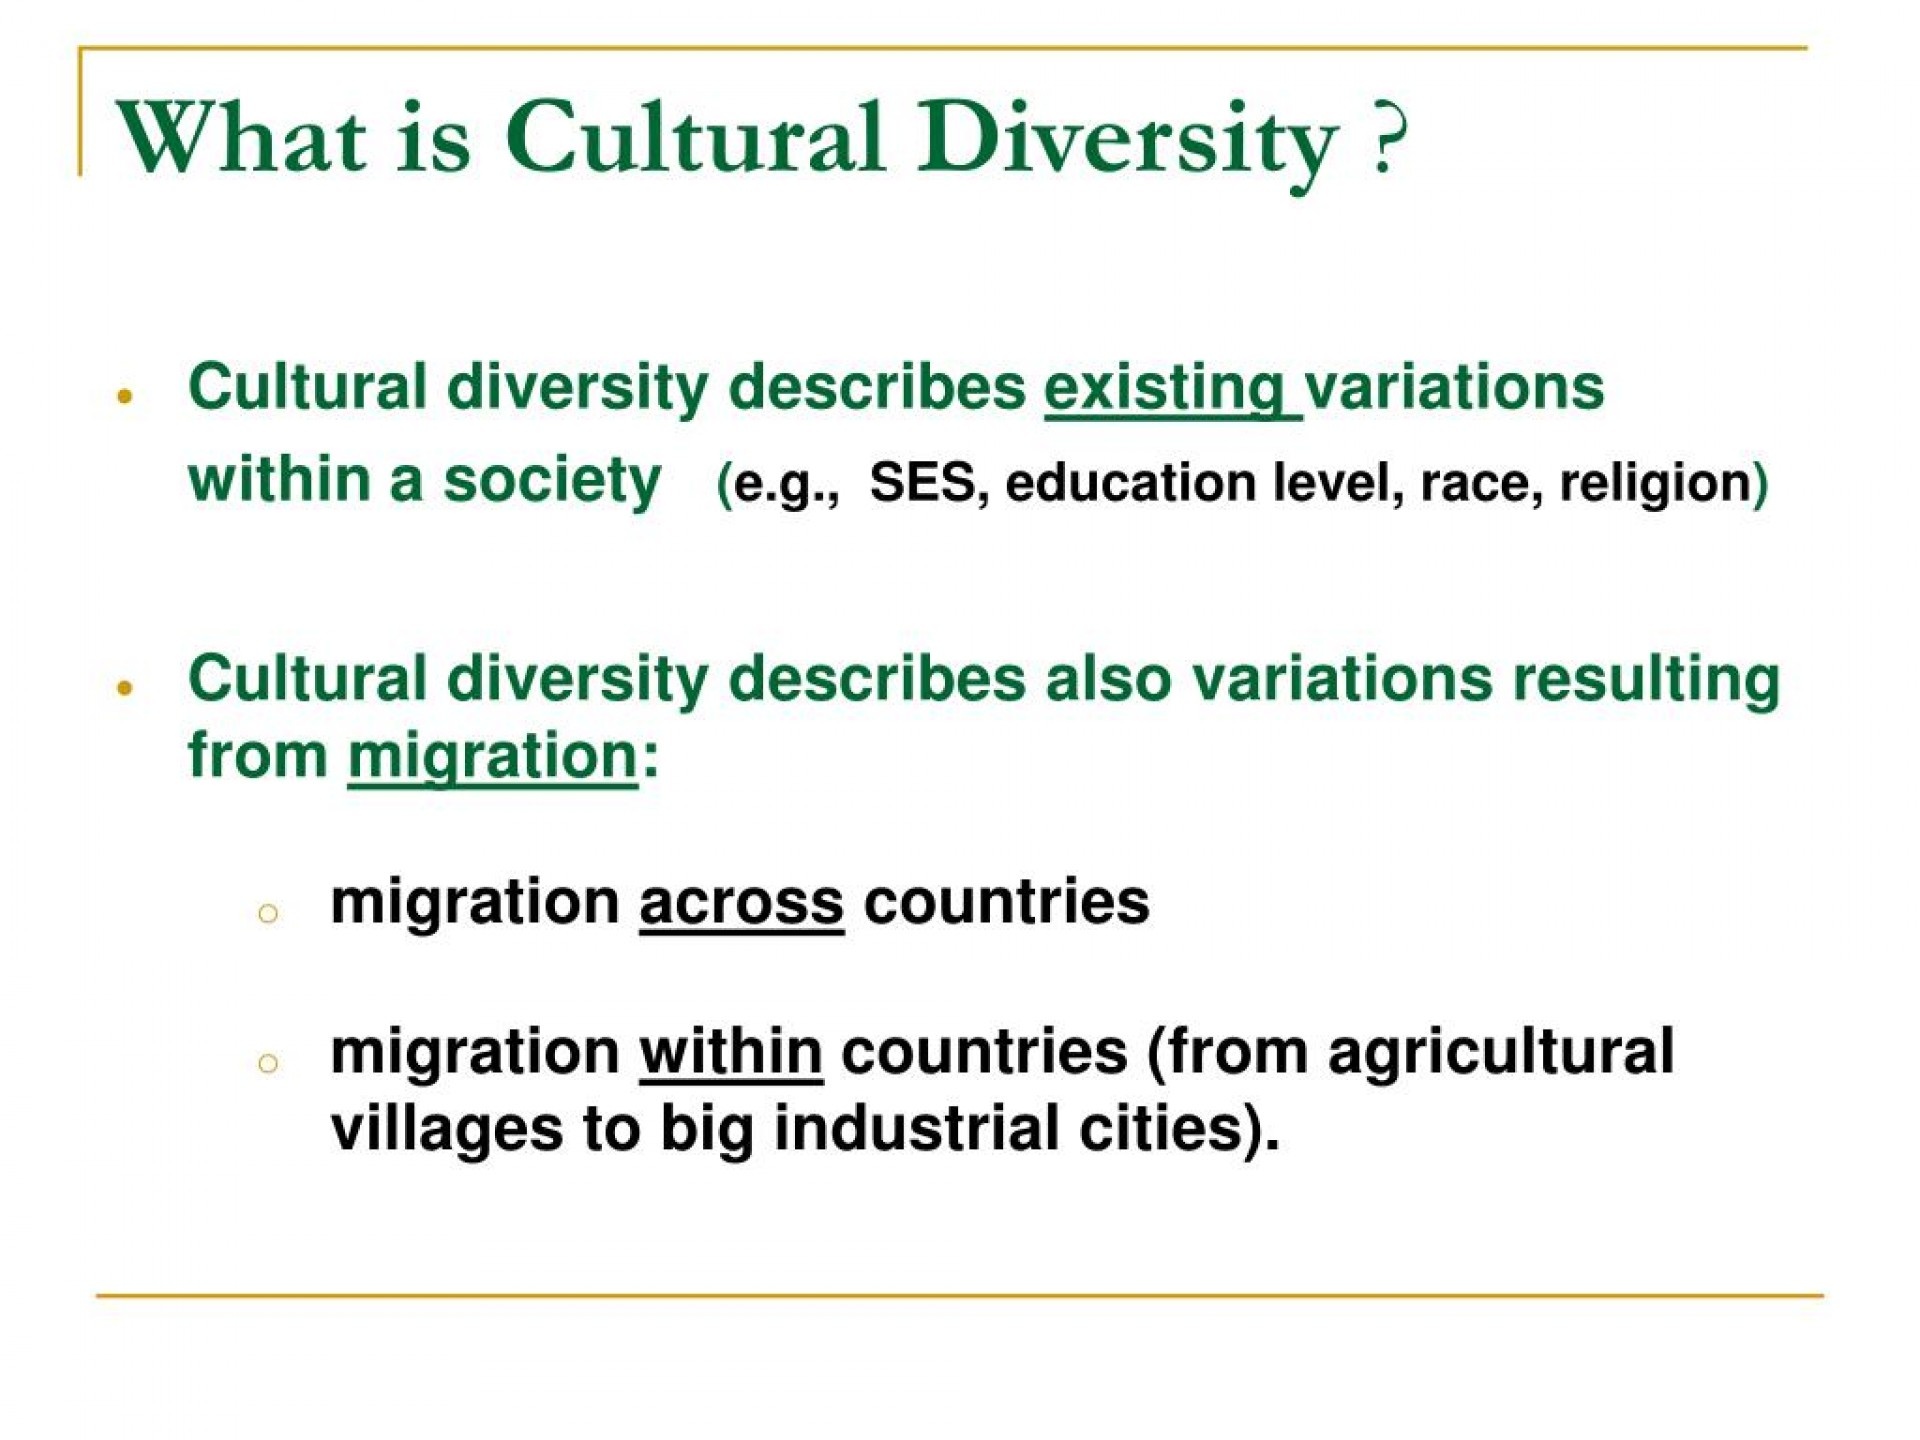 012 Cultural Diversity Essay What Is L Outstanding Topics Conclusion Introduction 1920